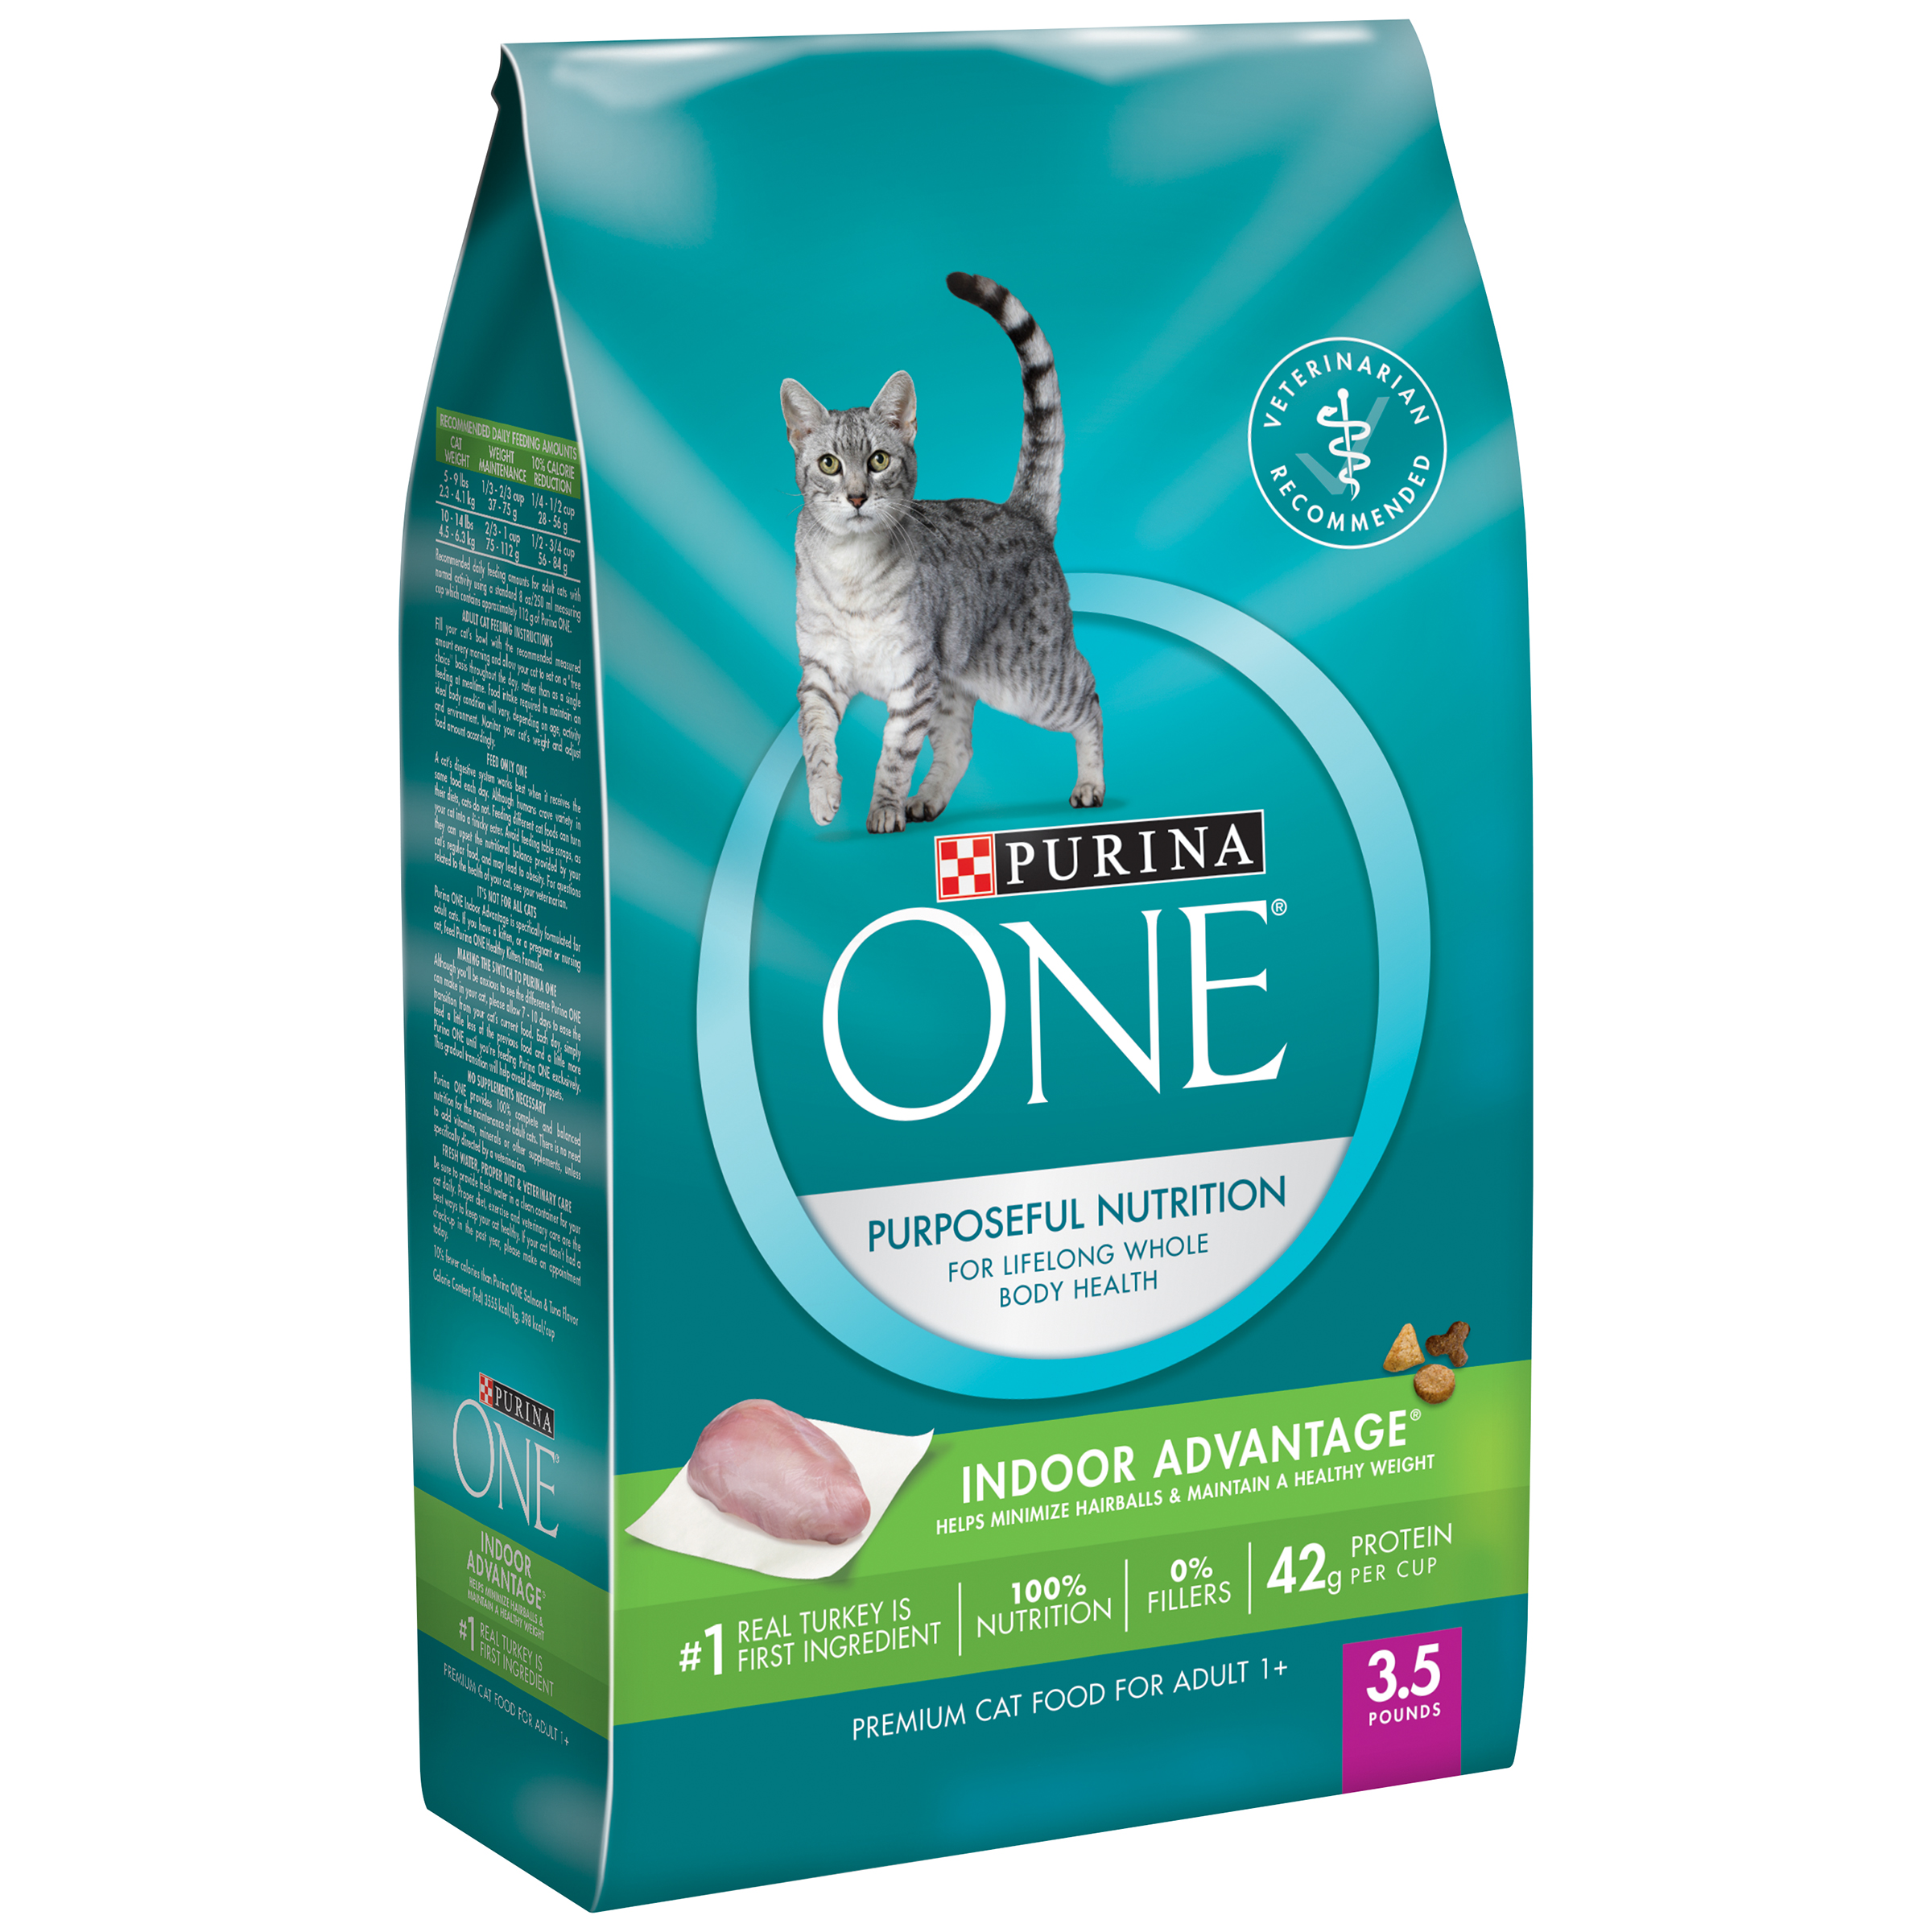 Purina ONE Indoor Advantage Adult Premium Cat Food 3.5 lb. Bag